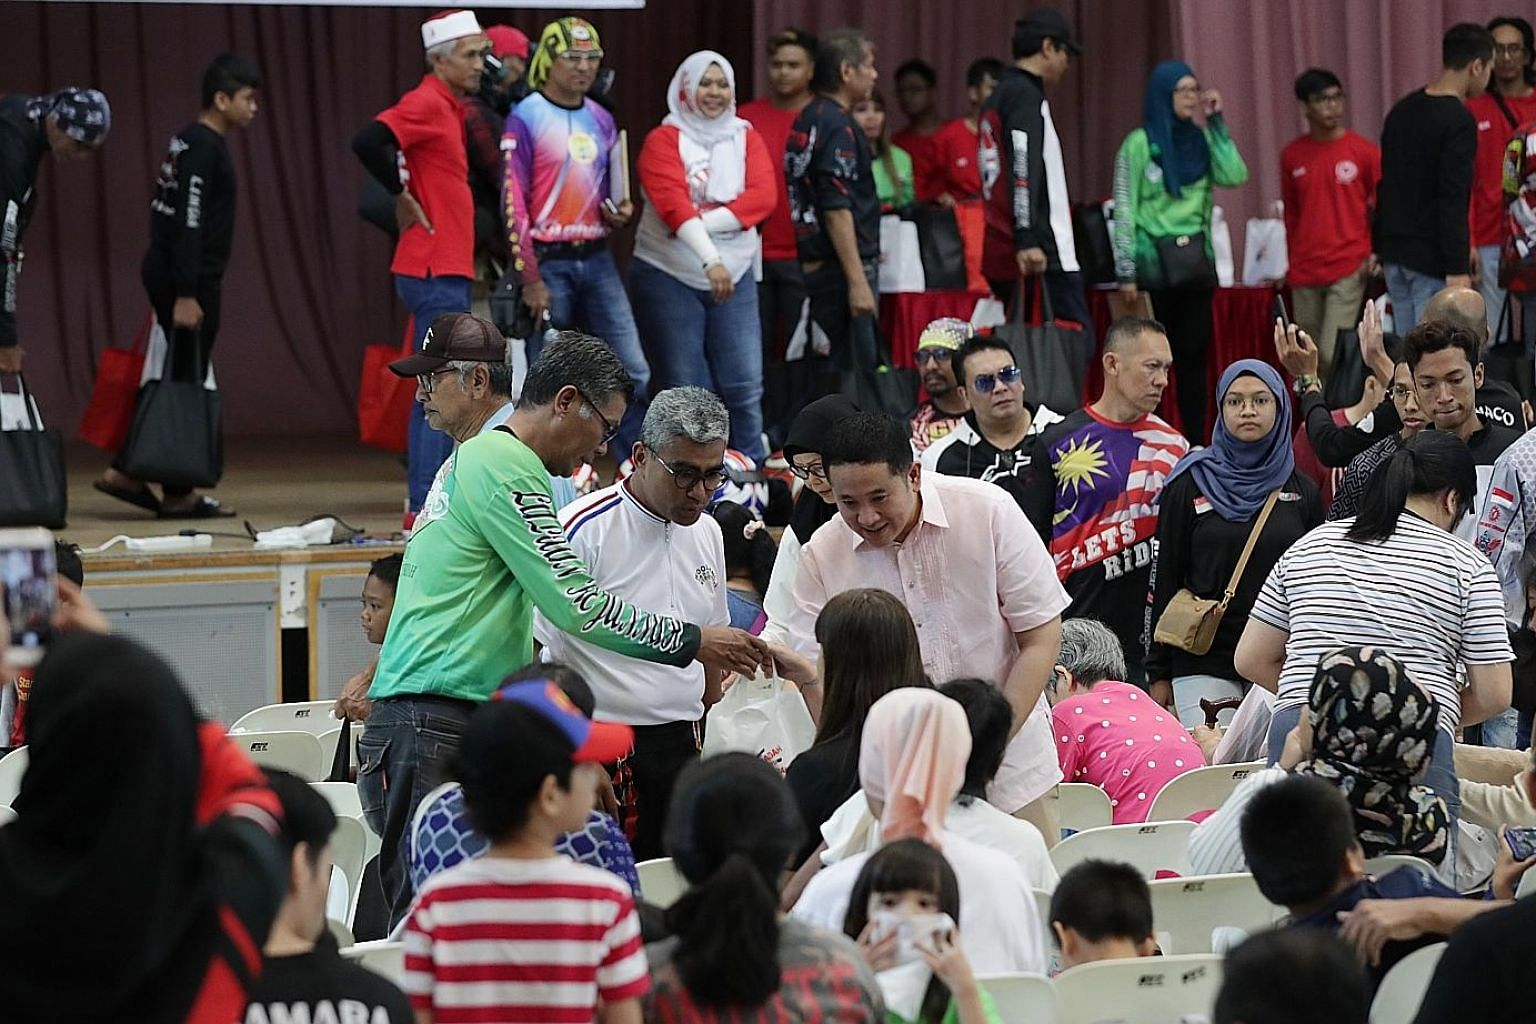 Senior Parliamentary Secretary for Home Affairs and Health Amrin Amin (centre) helping to give out food bags at Woodlands Community Club yesterday. Volunteers at the event included members of 23 motorcycle groups.